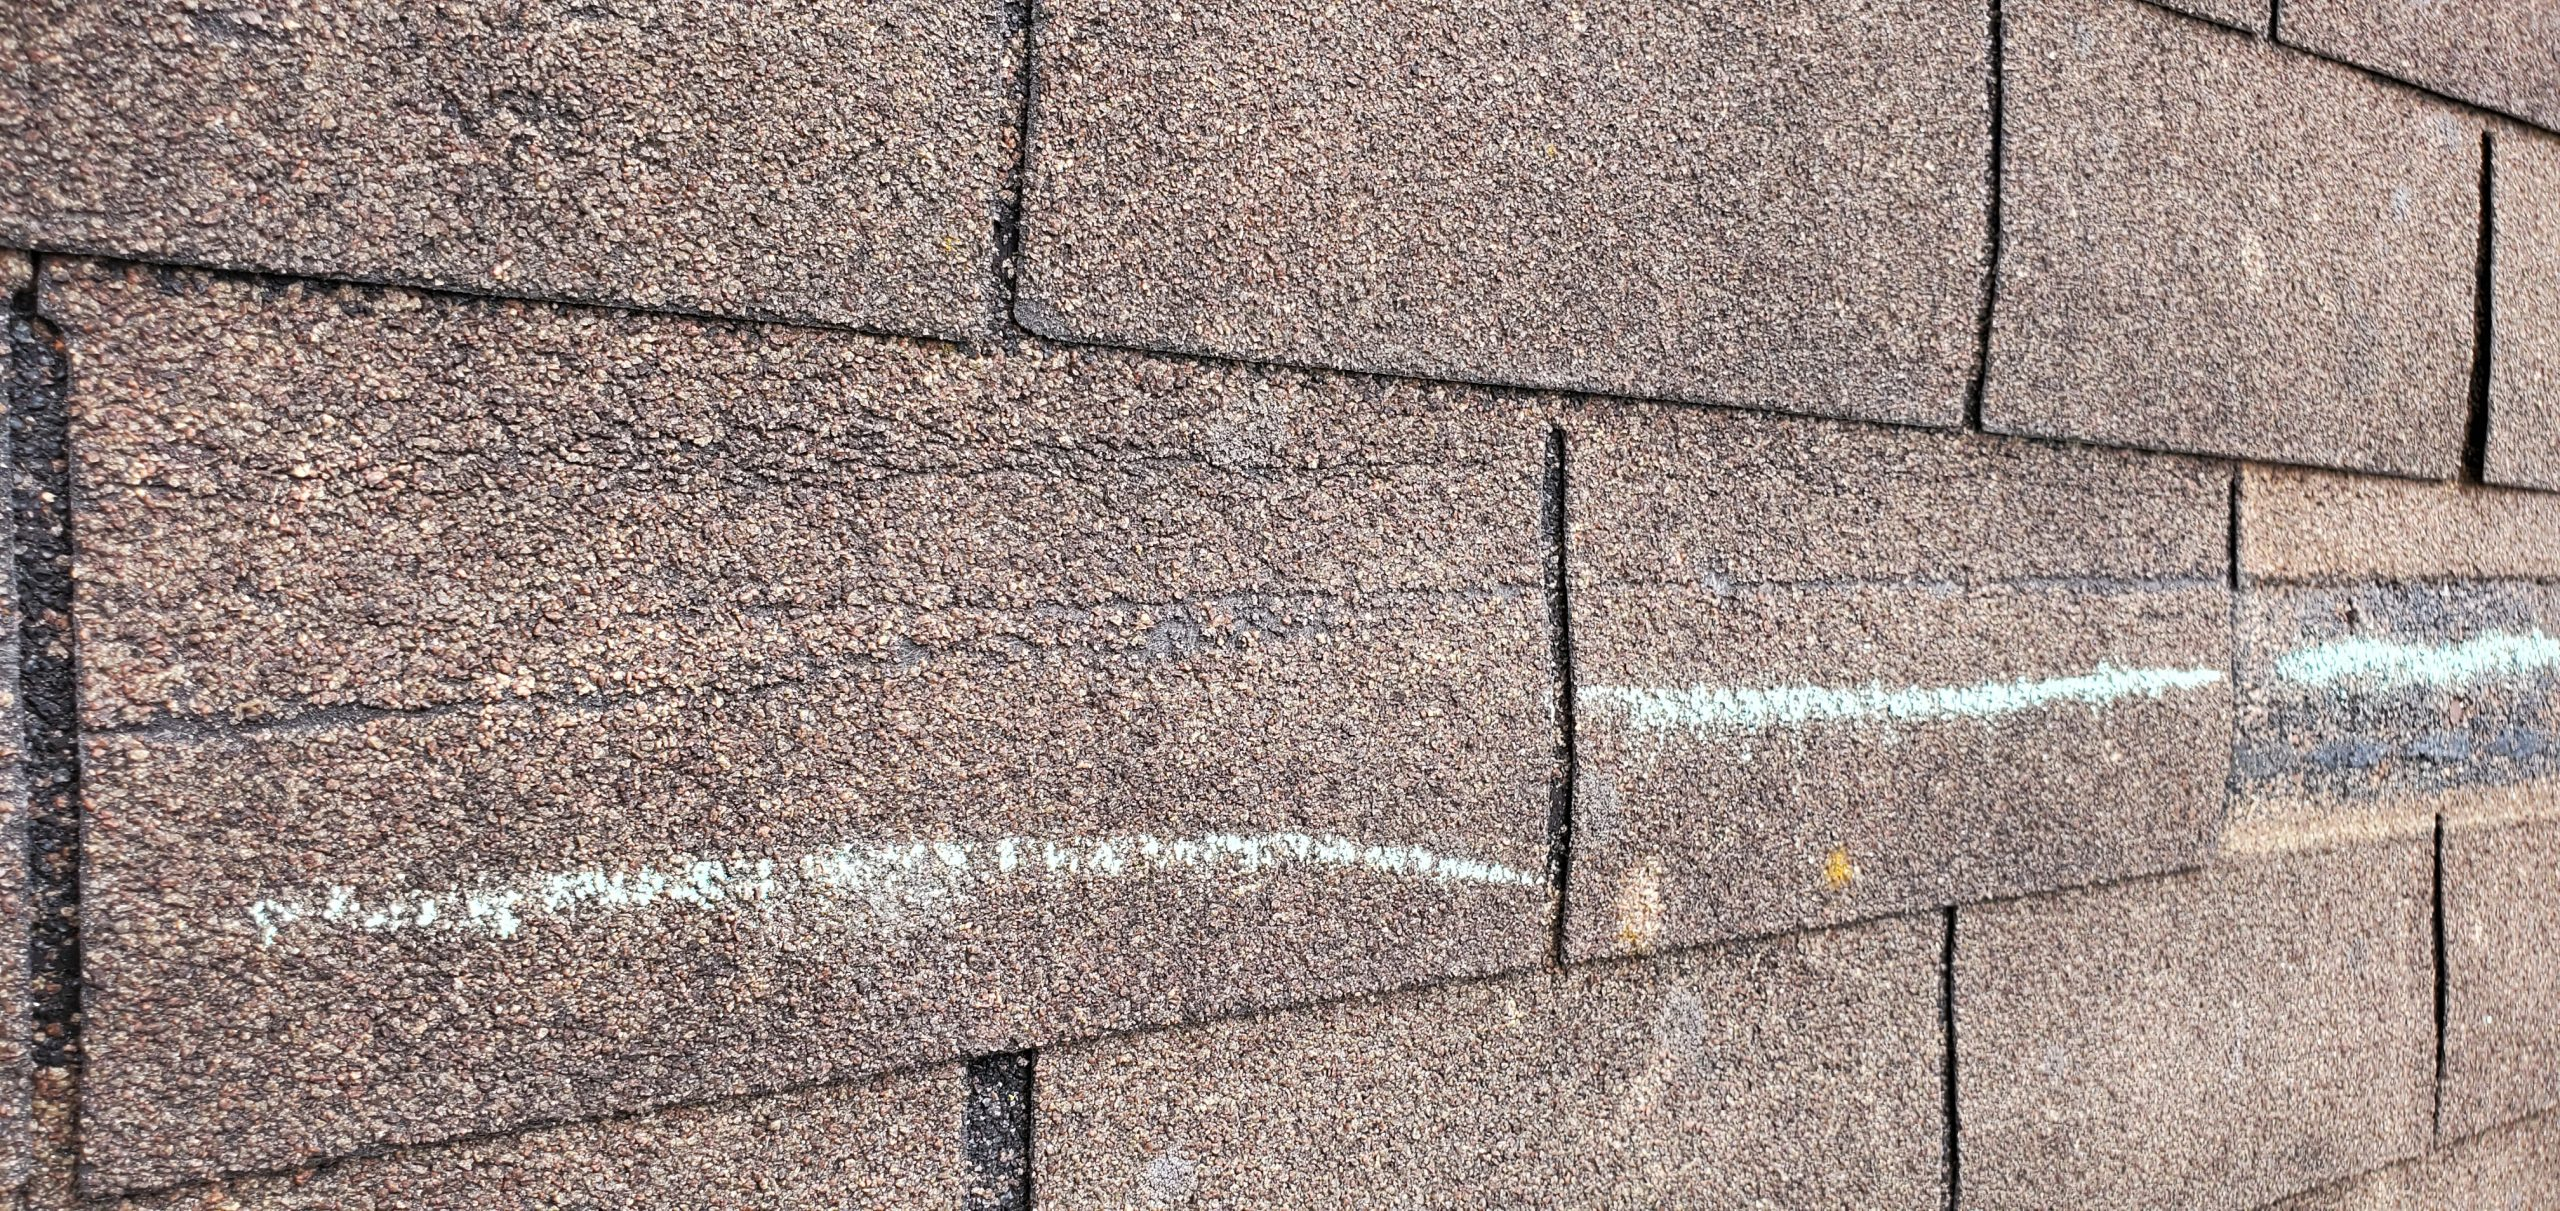 this is another picture of a cut along several shingles